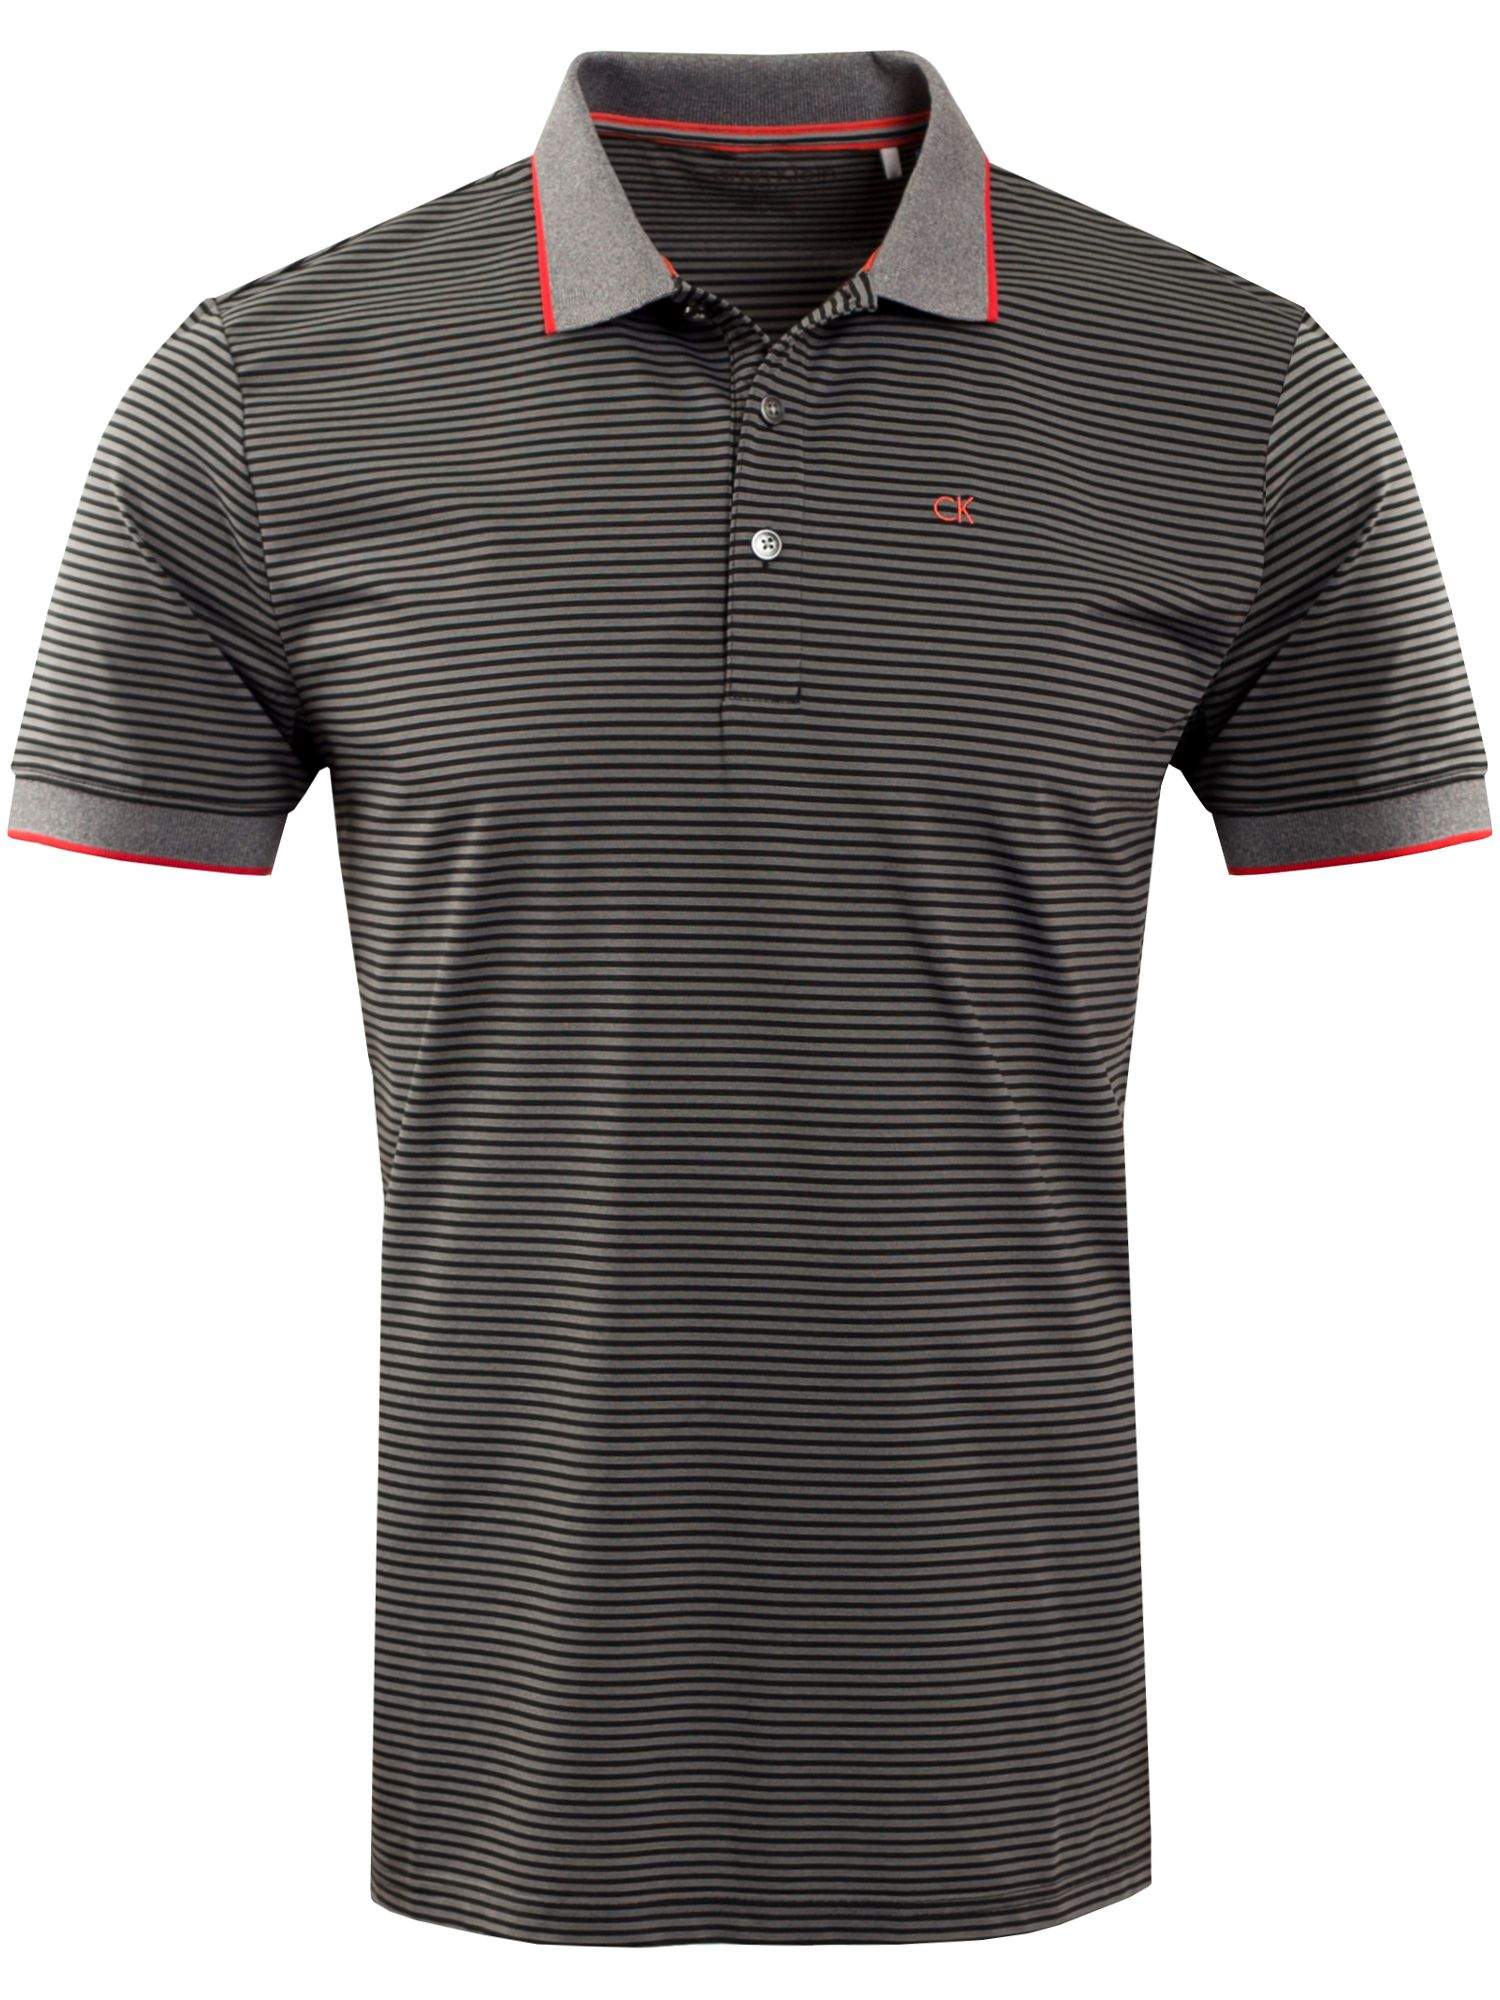 Men's Calvin Klein Golf Plasma Polo, Black & Red